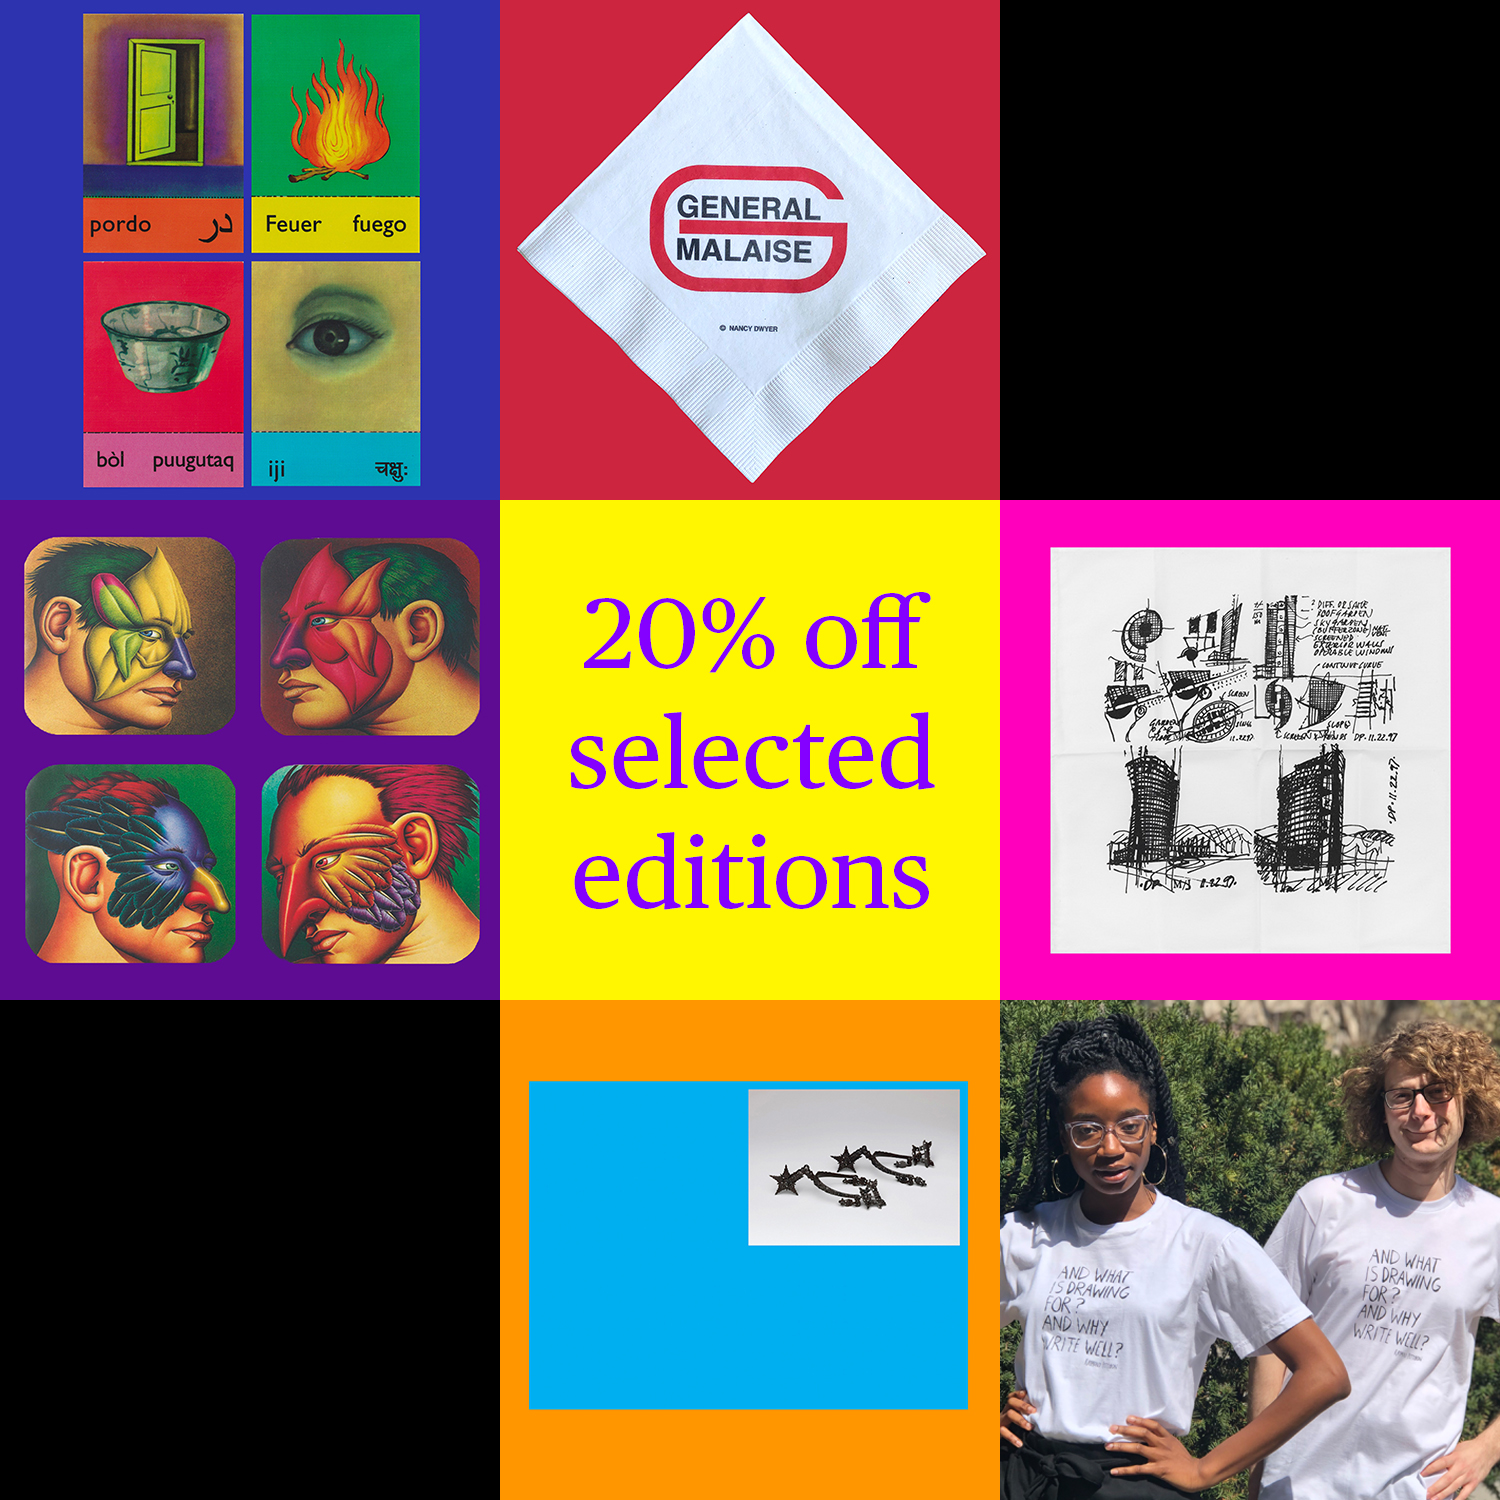 A 3x3 grid advertises a sale for editions, one edition per square, with the top right and bottom left corners blacked out.